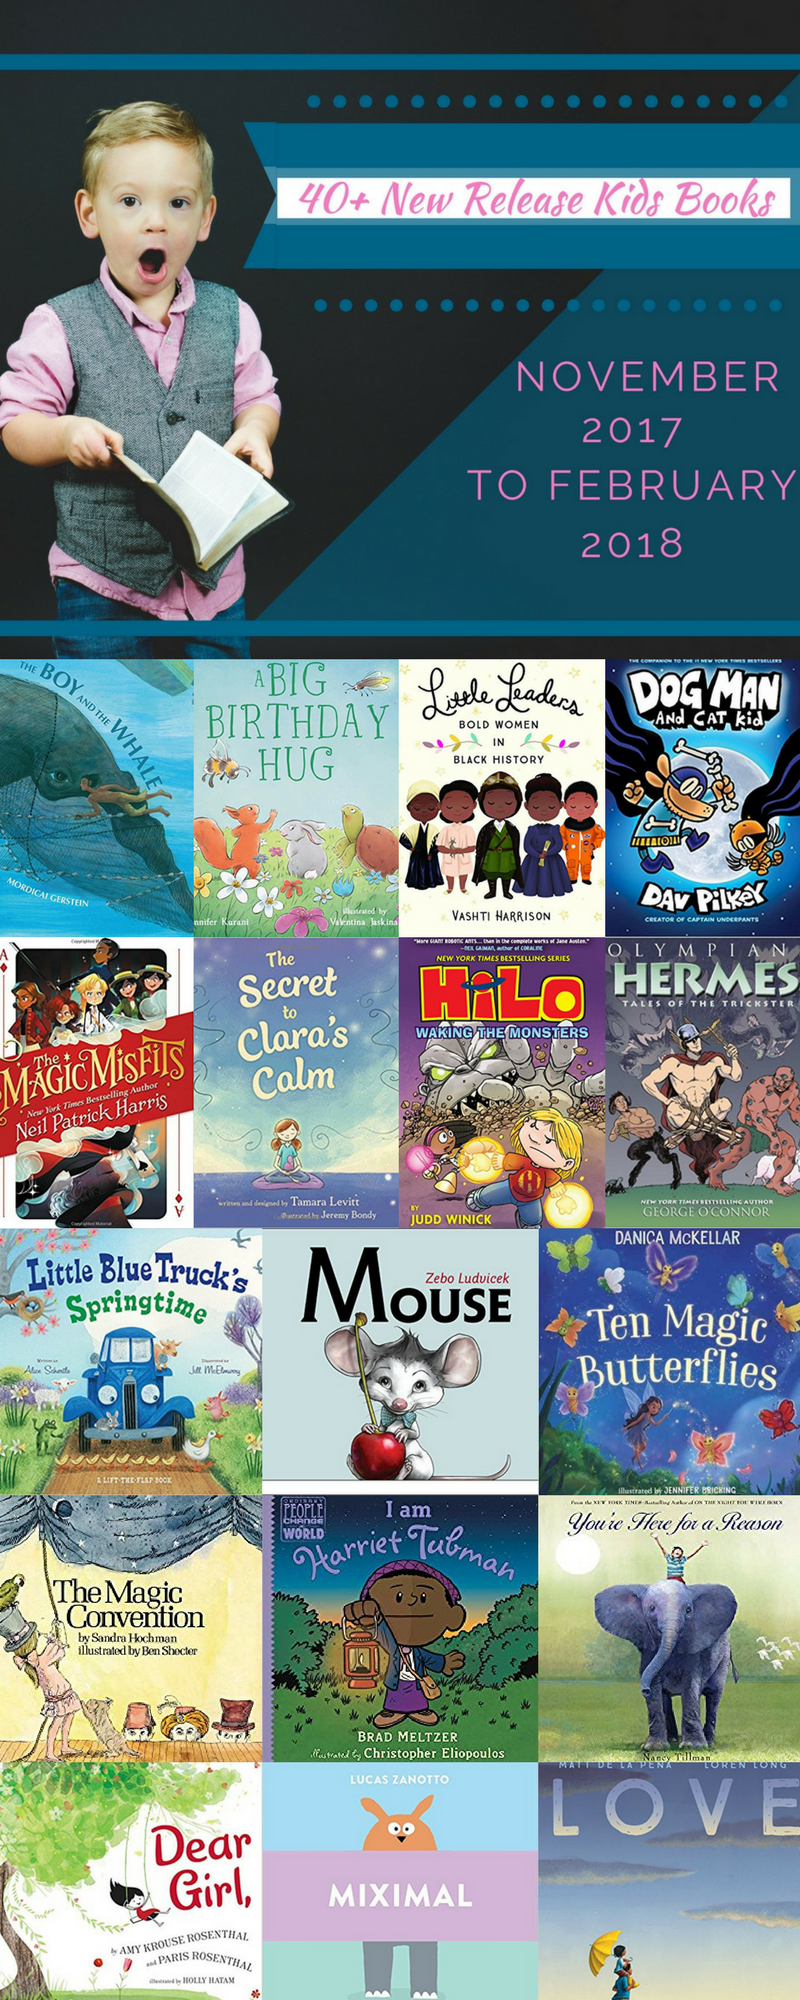 Upcoming Releases for Kids Books in Winter 2017/ 2018